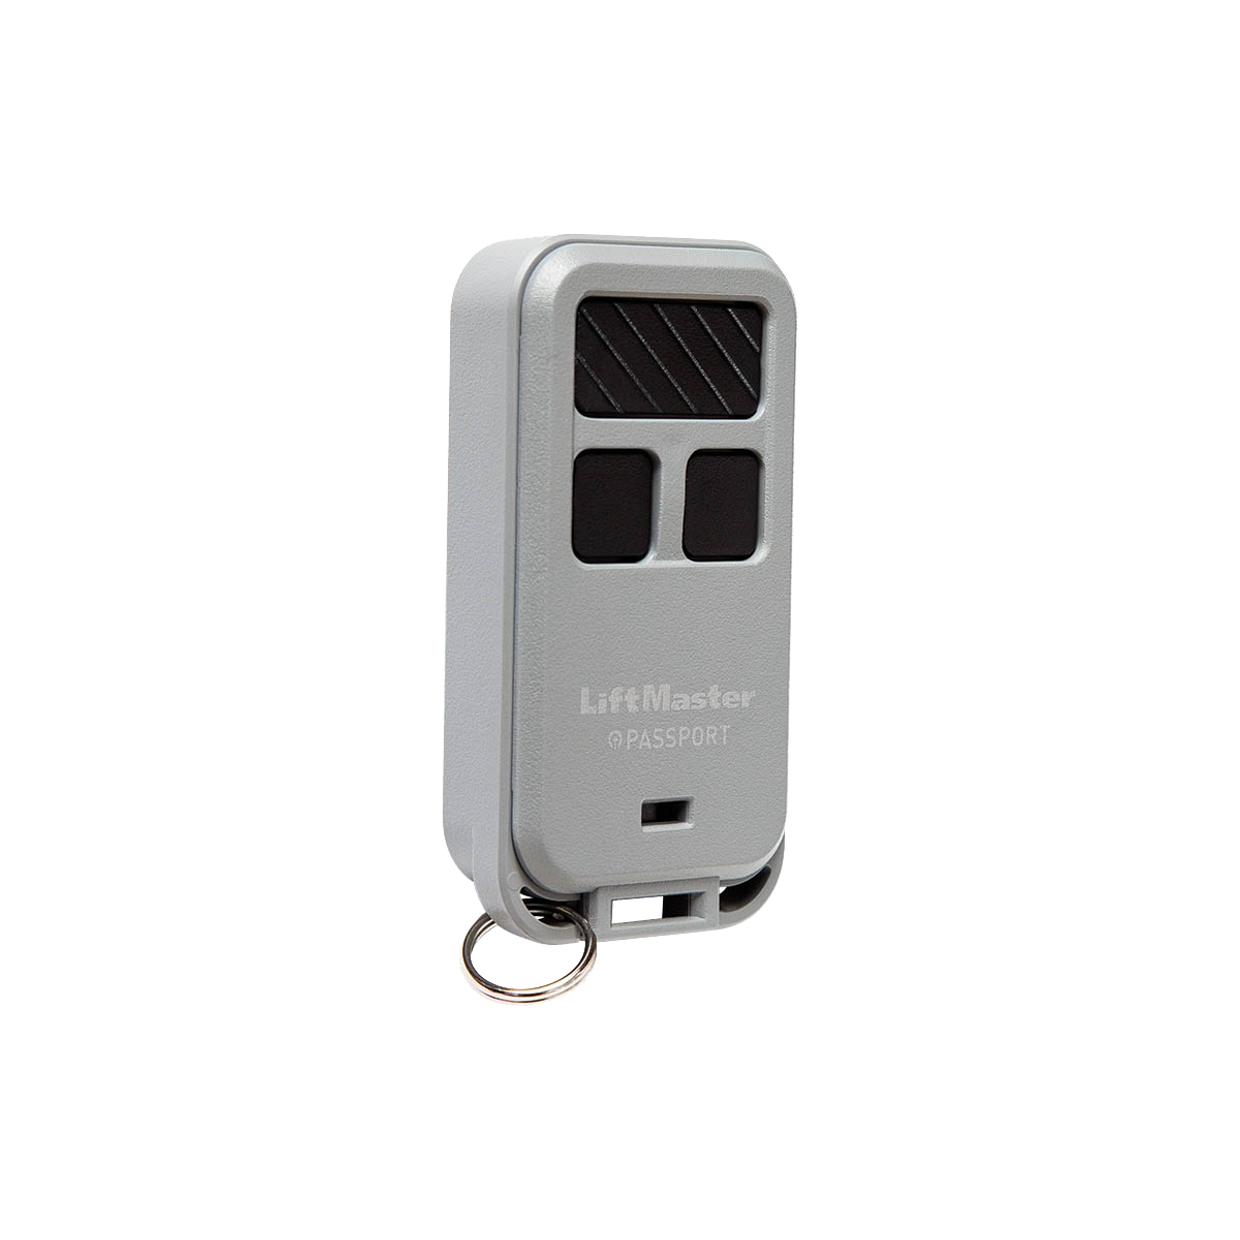 PPK3M Passport MAX 3 Button Keychain Remote Control RIGHT